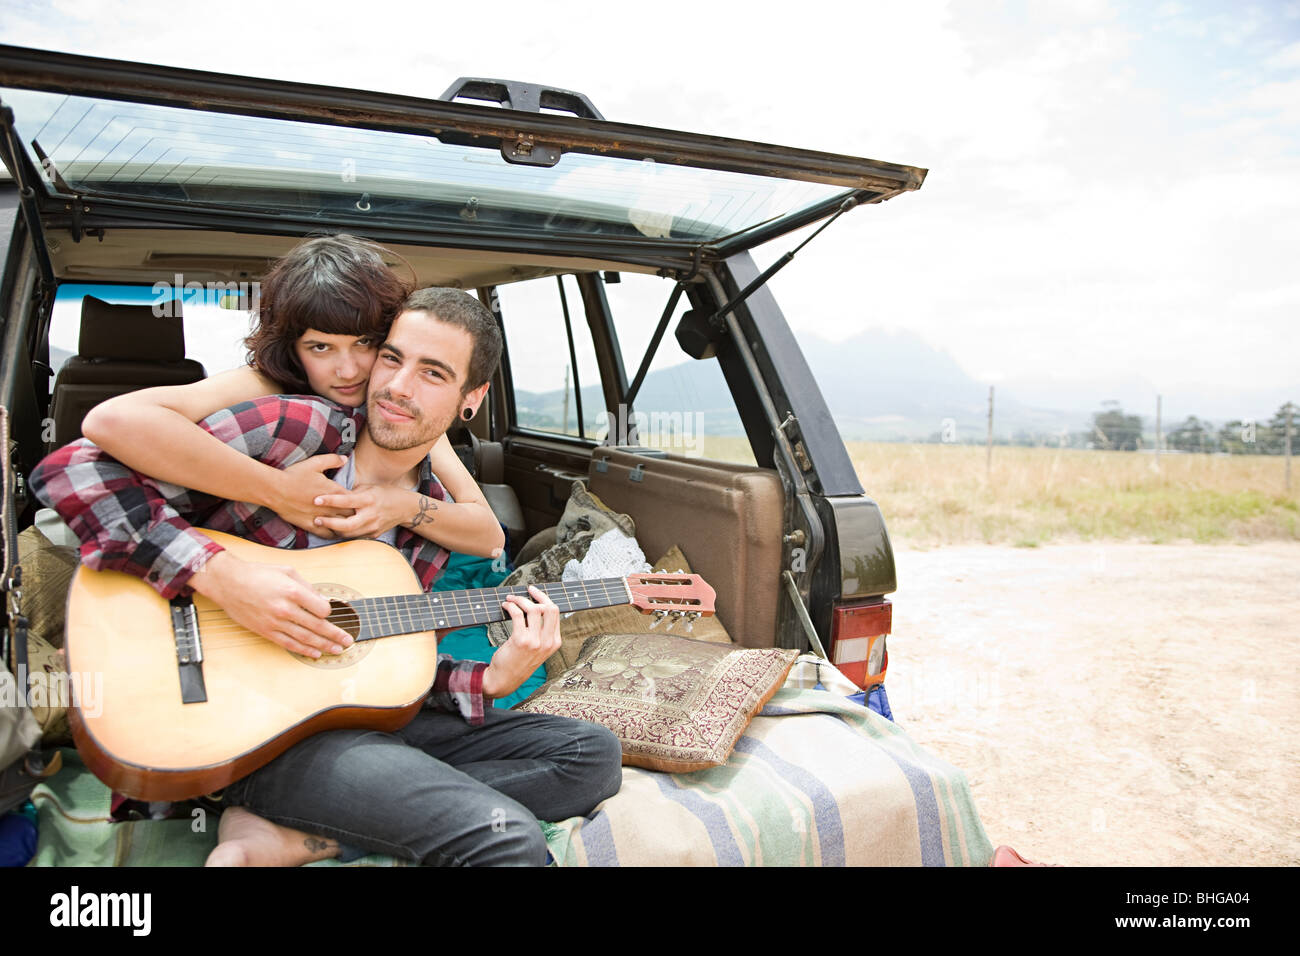 Young couple with guitar - Stock Image